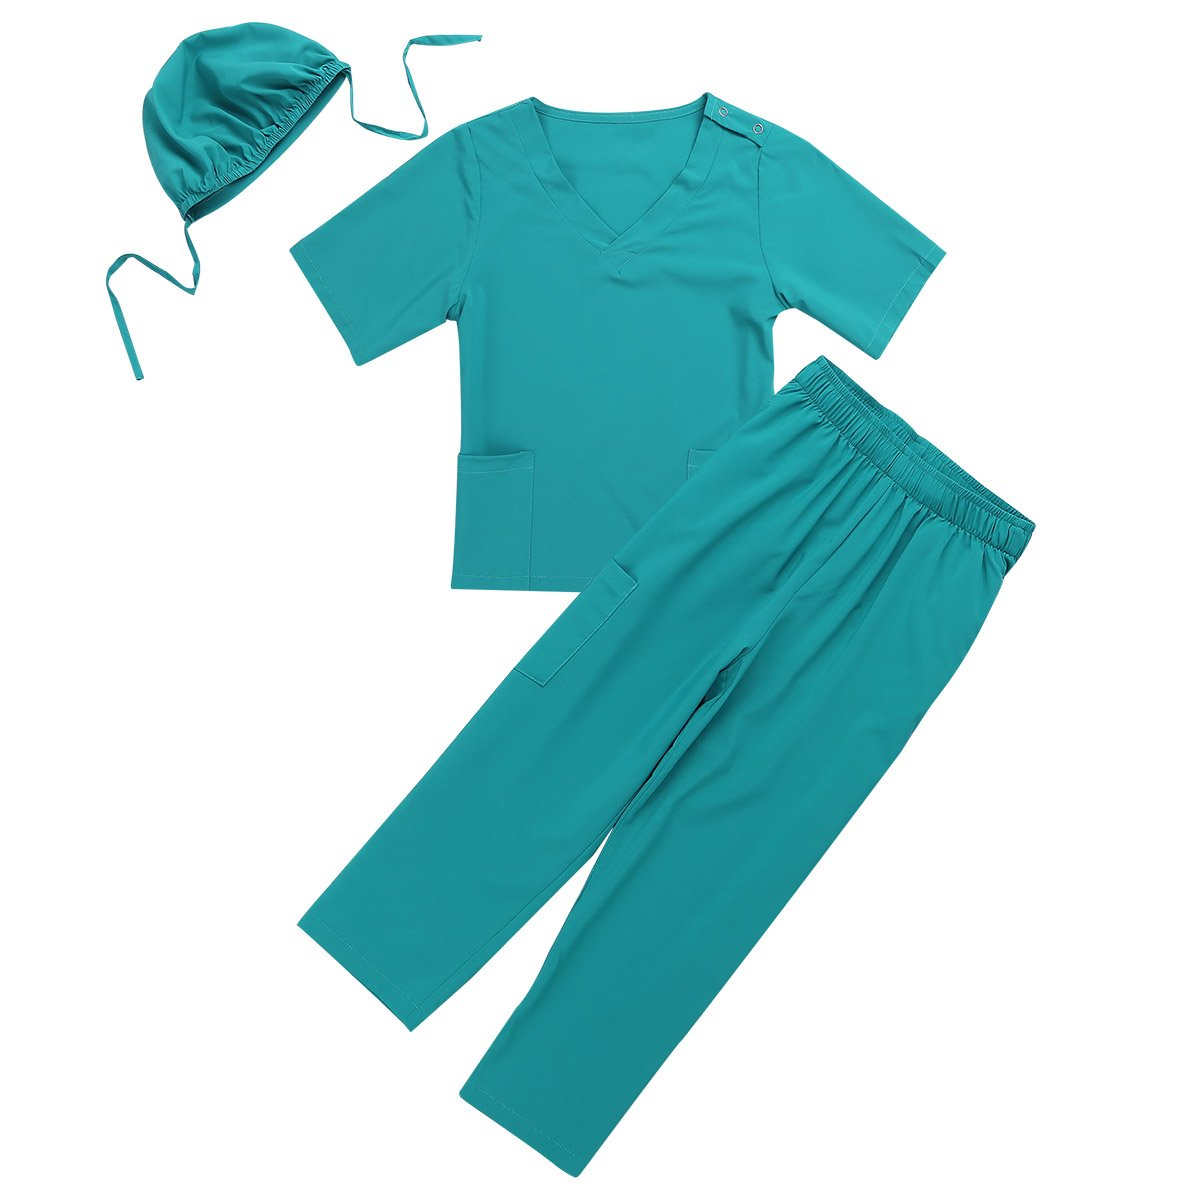 Agoky Children Halloween Surgeon Cosplay Costumes Lab Coat Combo Outfit Cap Set Green 5-6